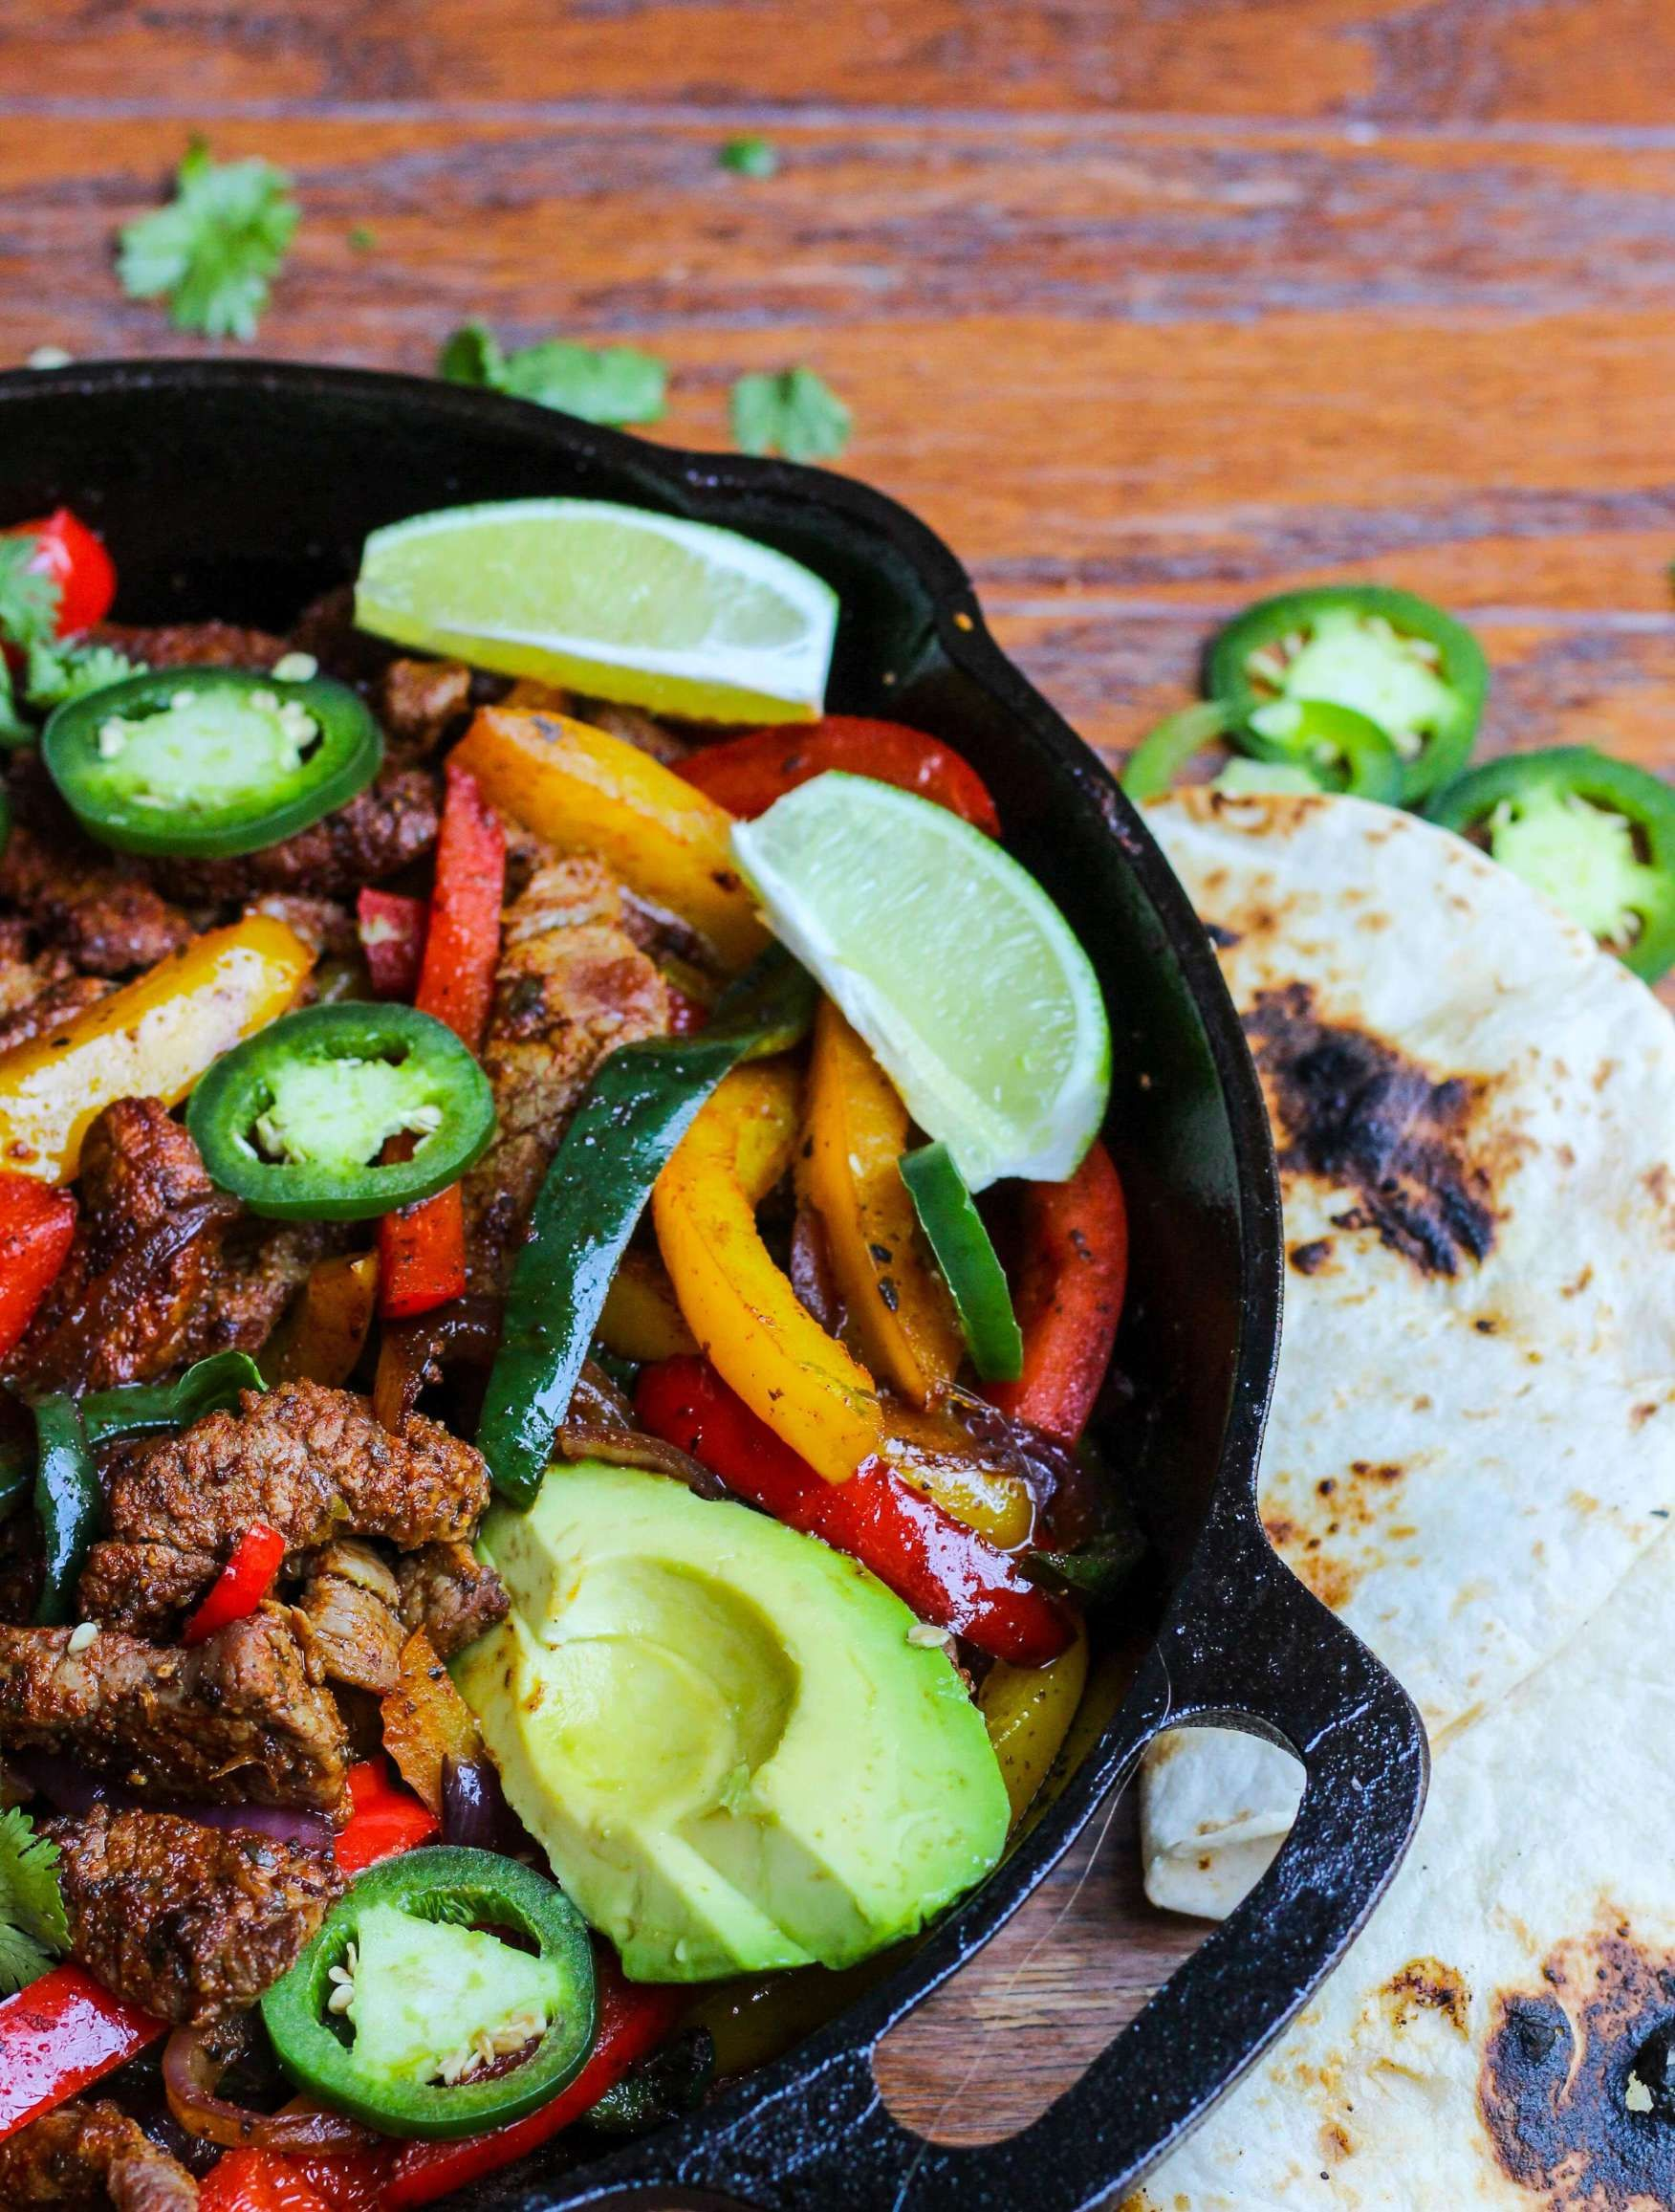 20 Minute Steak Fajita Skillet with Avocado #steakfajitarecipe